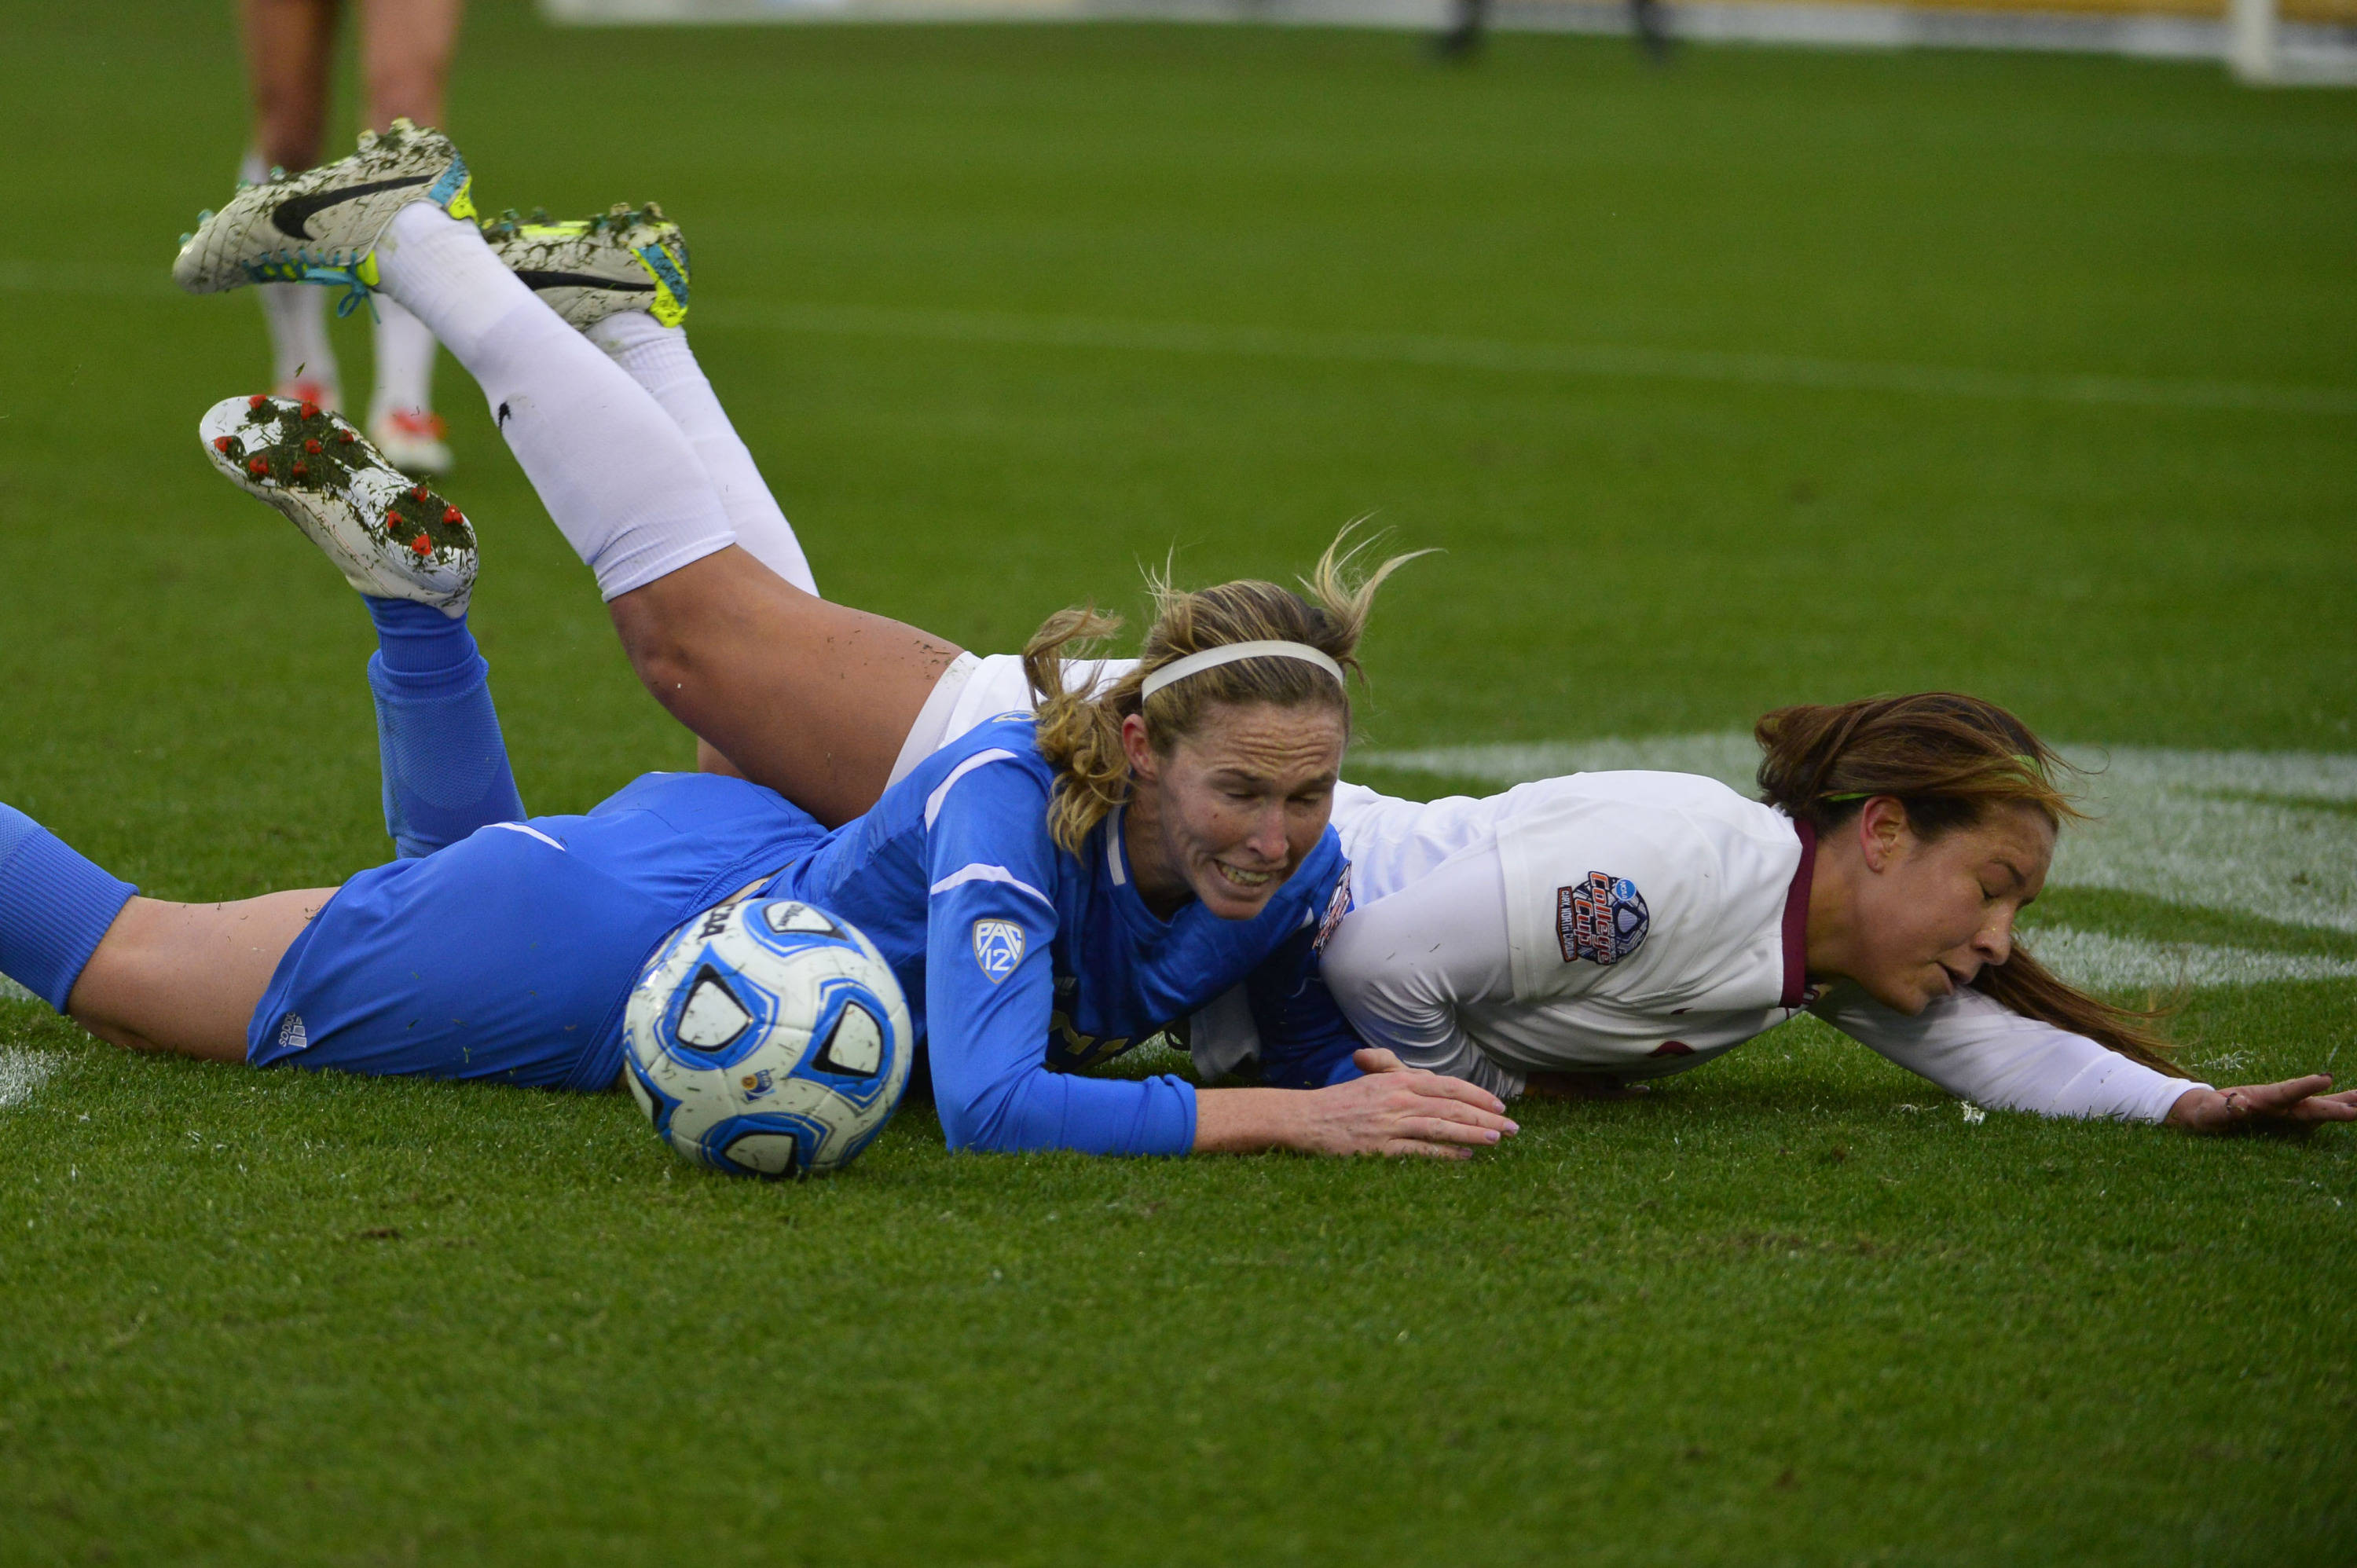 UCLA Bruins midfield/forward Jenna Richmond (7) and Florida State Seminoles midfielder Nickolette Driesse (3) fight for the ball. Mandatory Credit: Bob Donnan-USA TODAY Sports